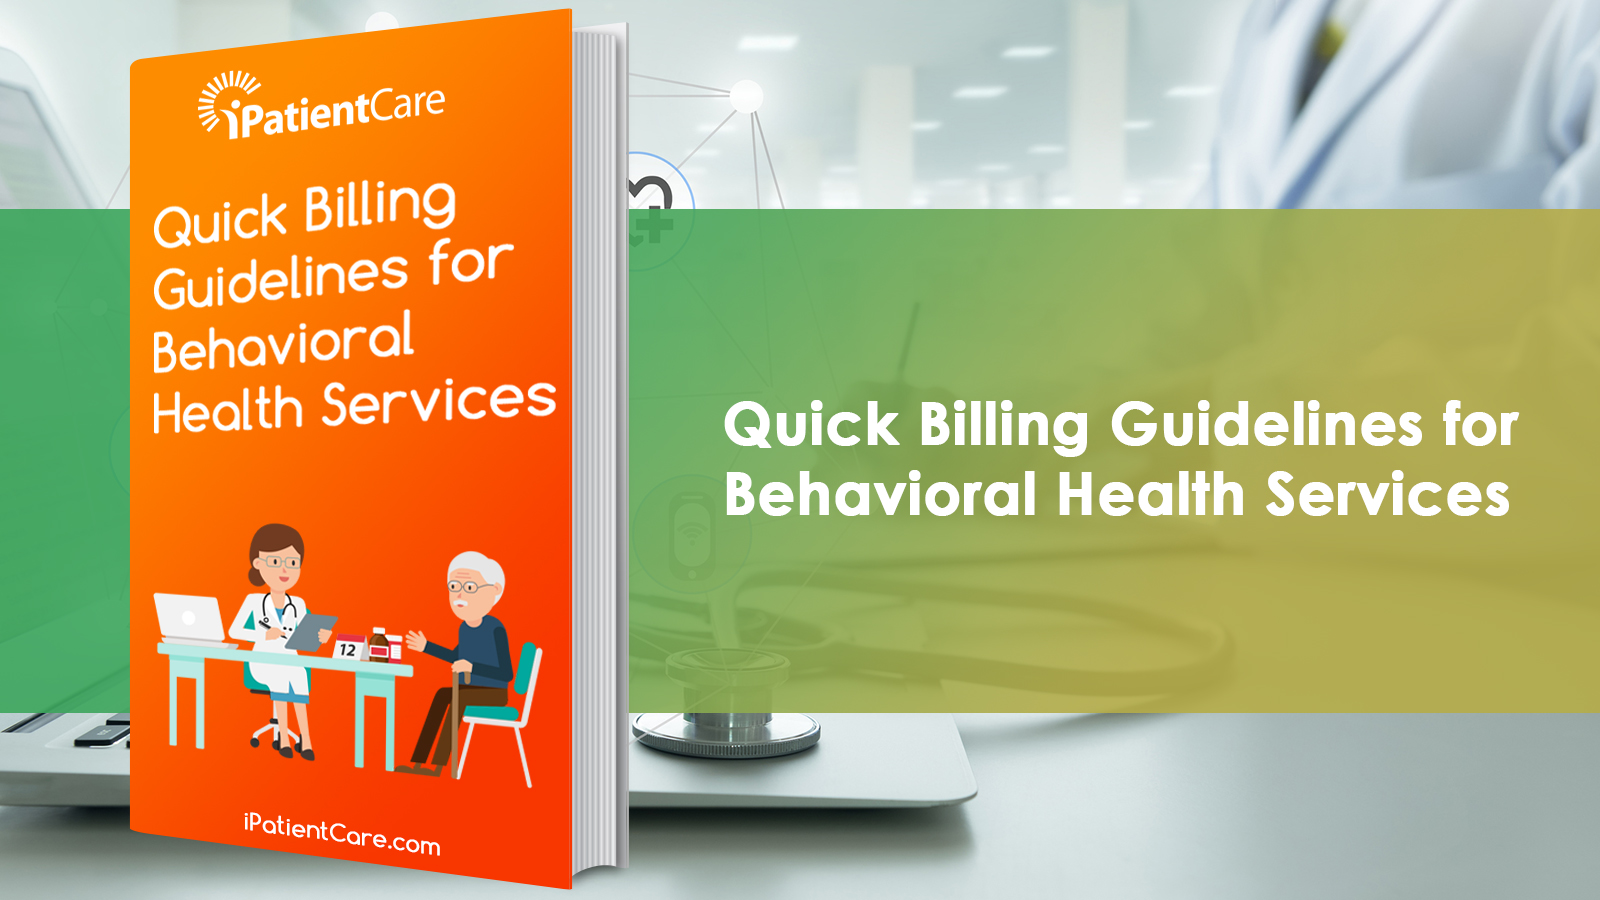 Quick Billing Guidelines for Behavioral Health Services